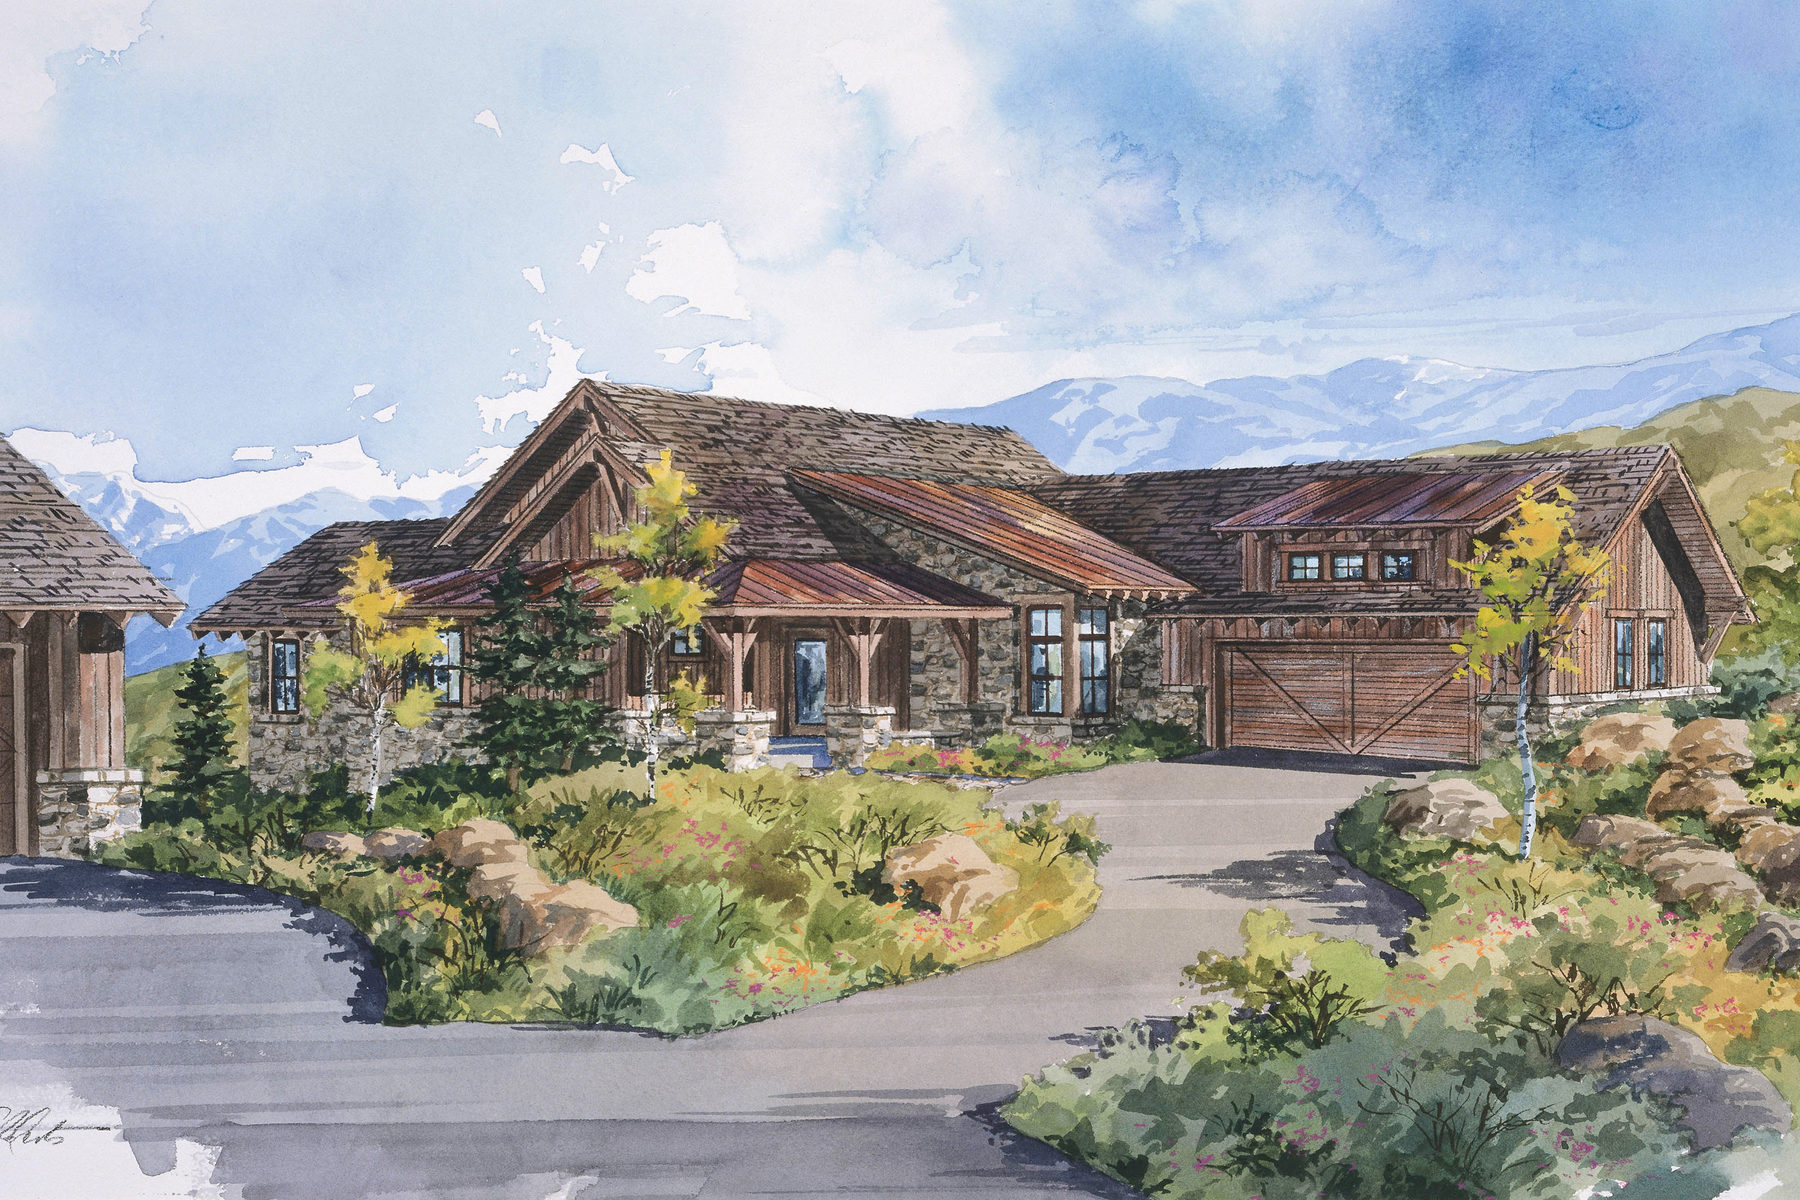 Single Family Home for Sale at Promontory Dye Course Cabin 9320 Dye Cabins Dr Lot 22 Park City, Utah, 84098 United States